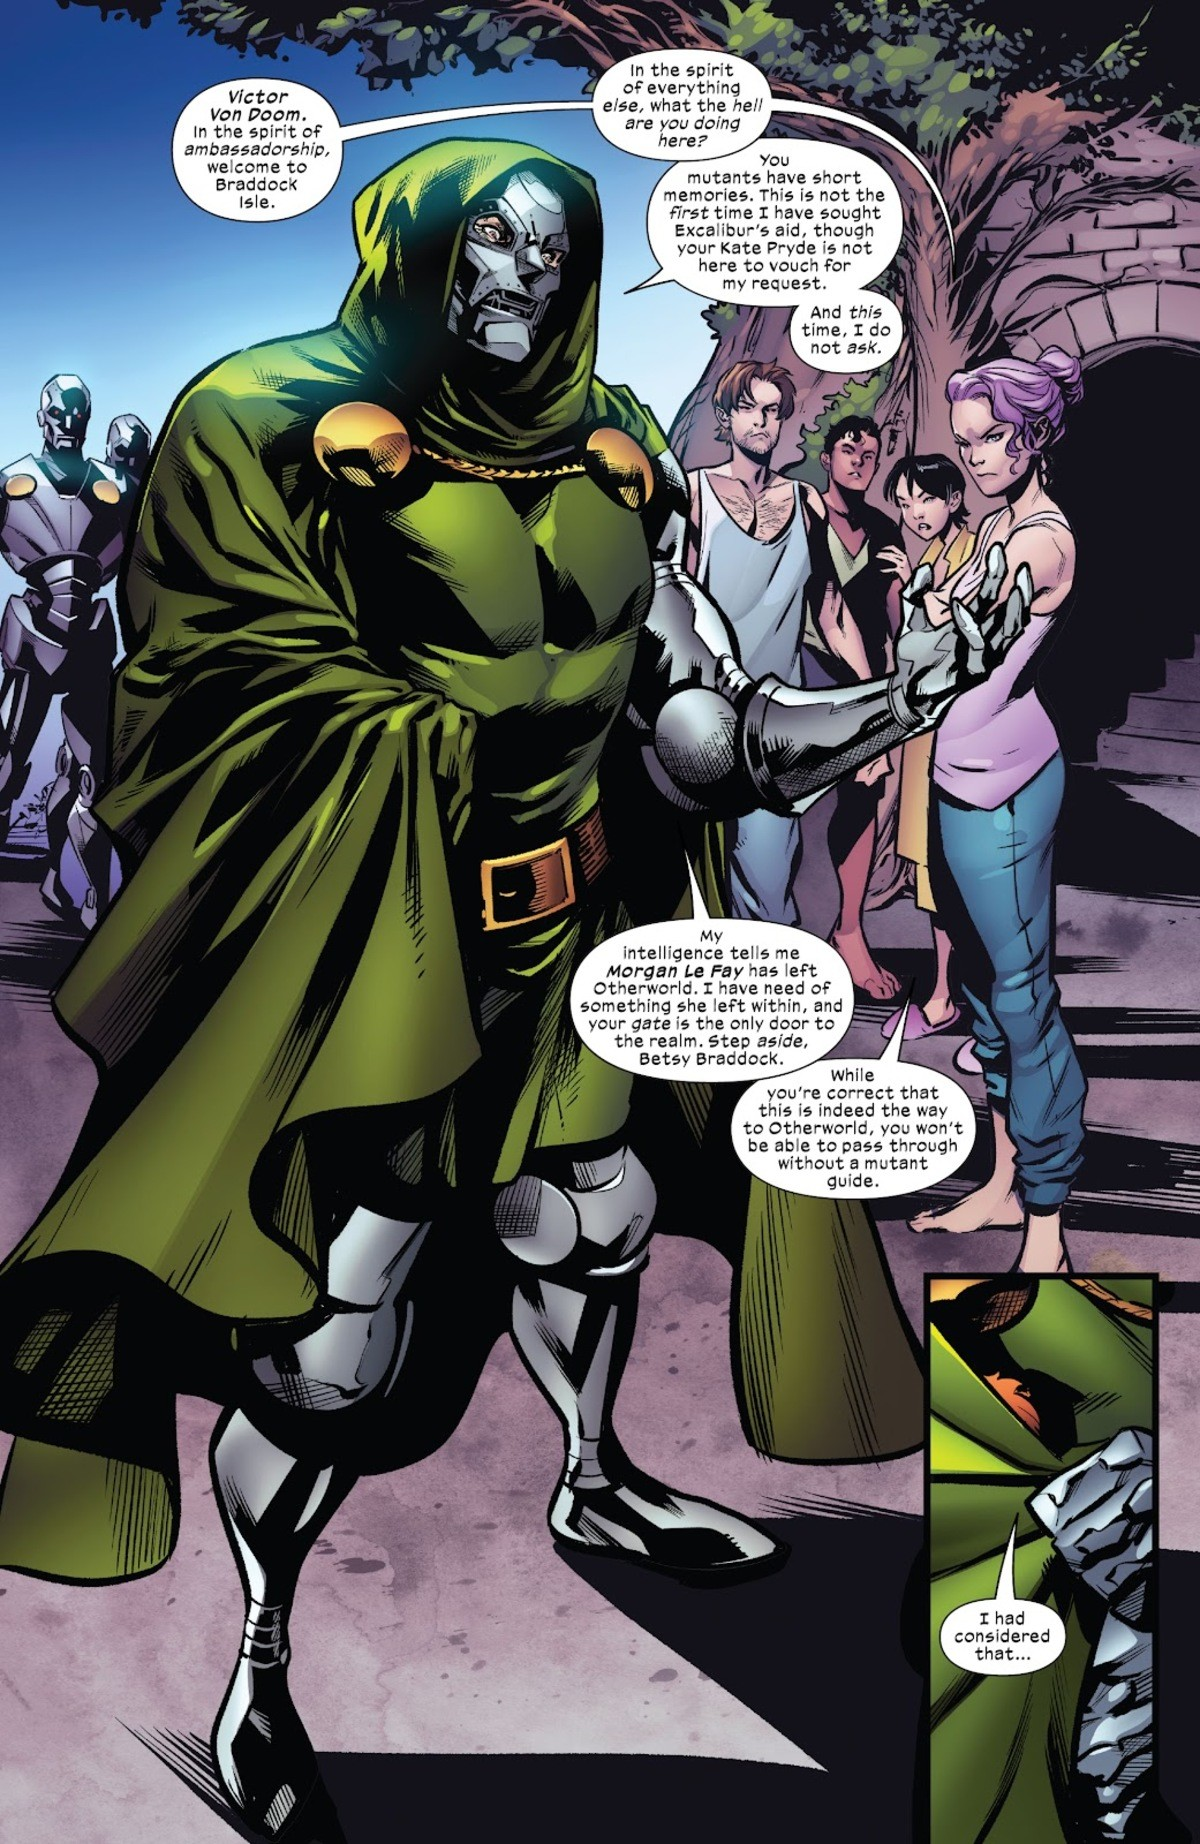 Doomnapping. eXcalibur Issue #23 .. People are always assuming the worst of Victor...